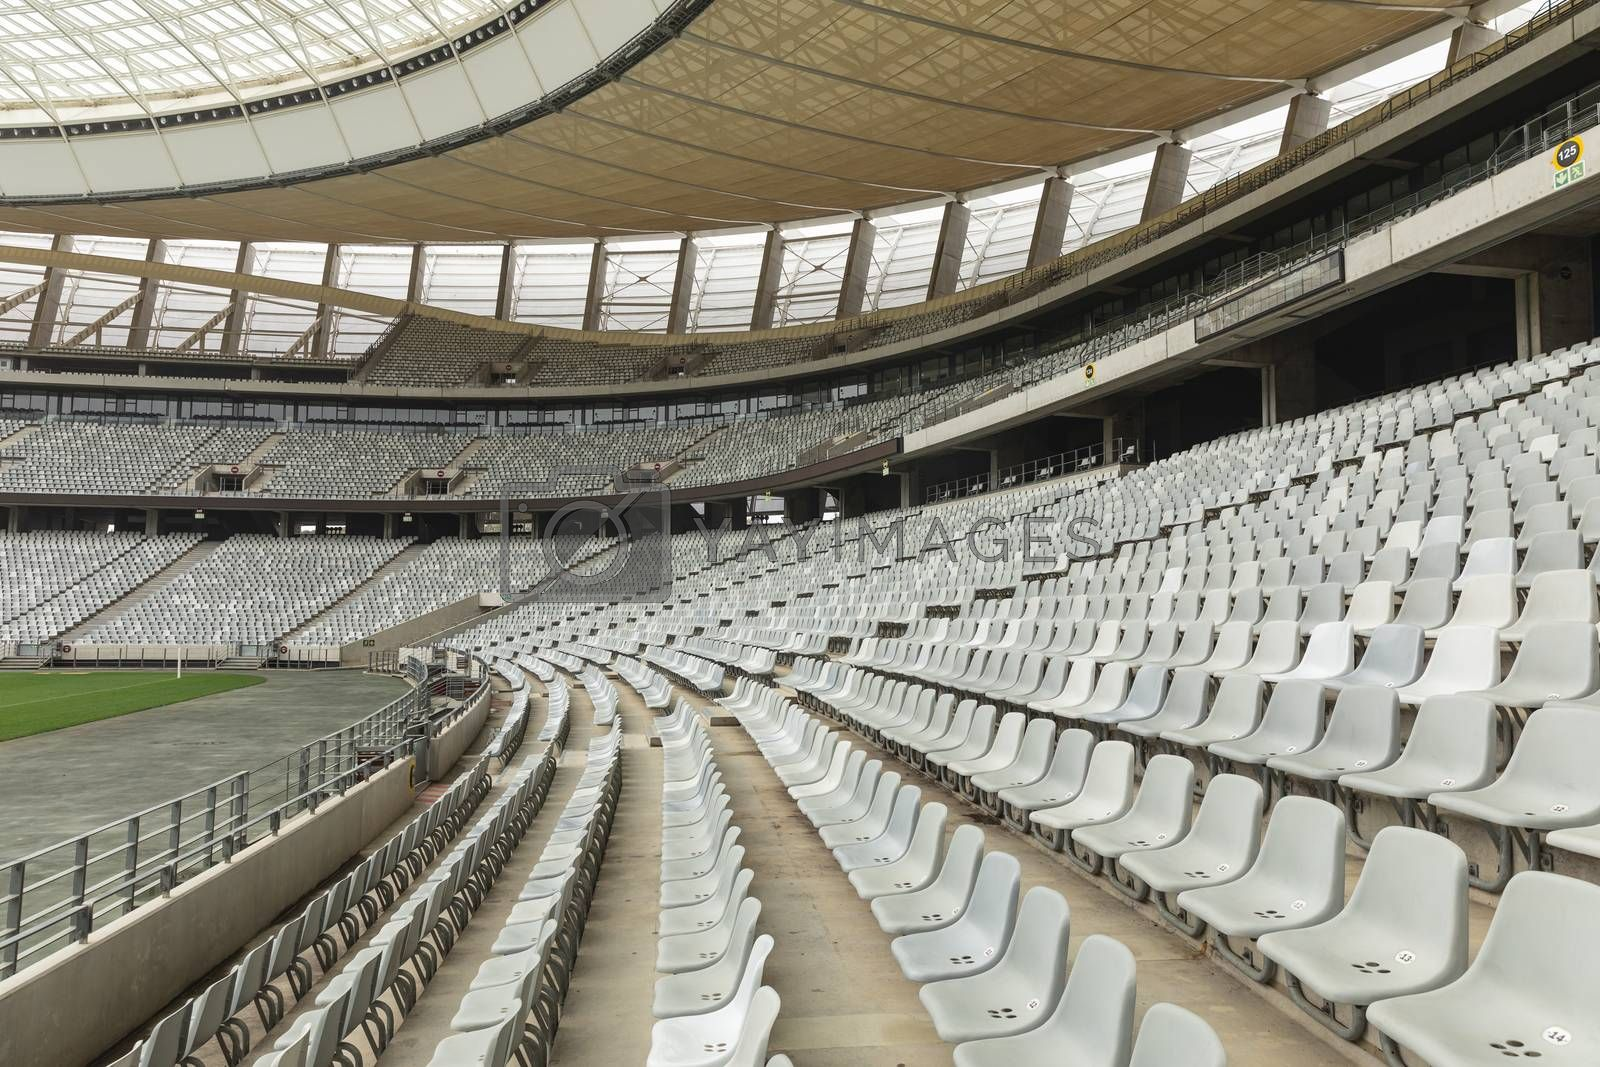 Side view of empty spectators seat in a stadium